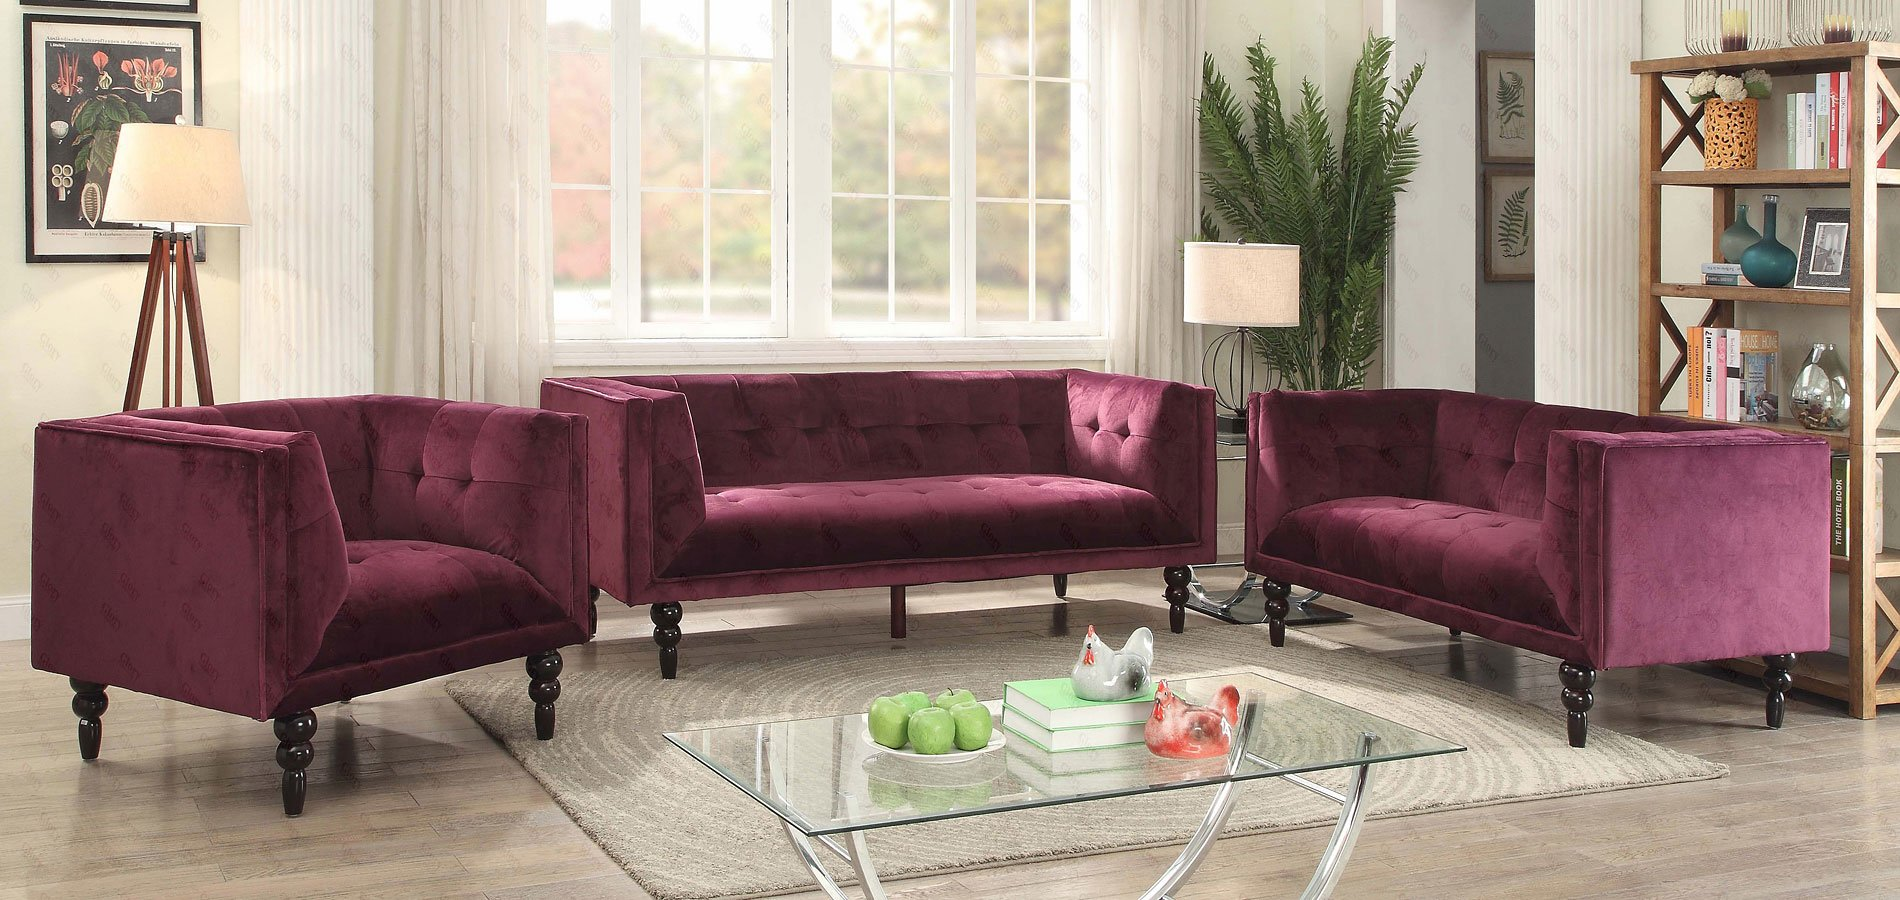 G233 Living Room Set (Purple)